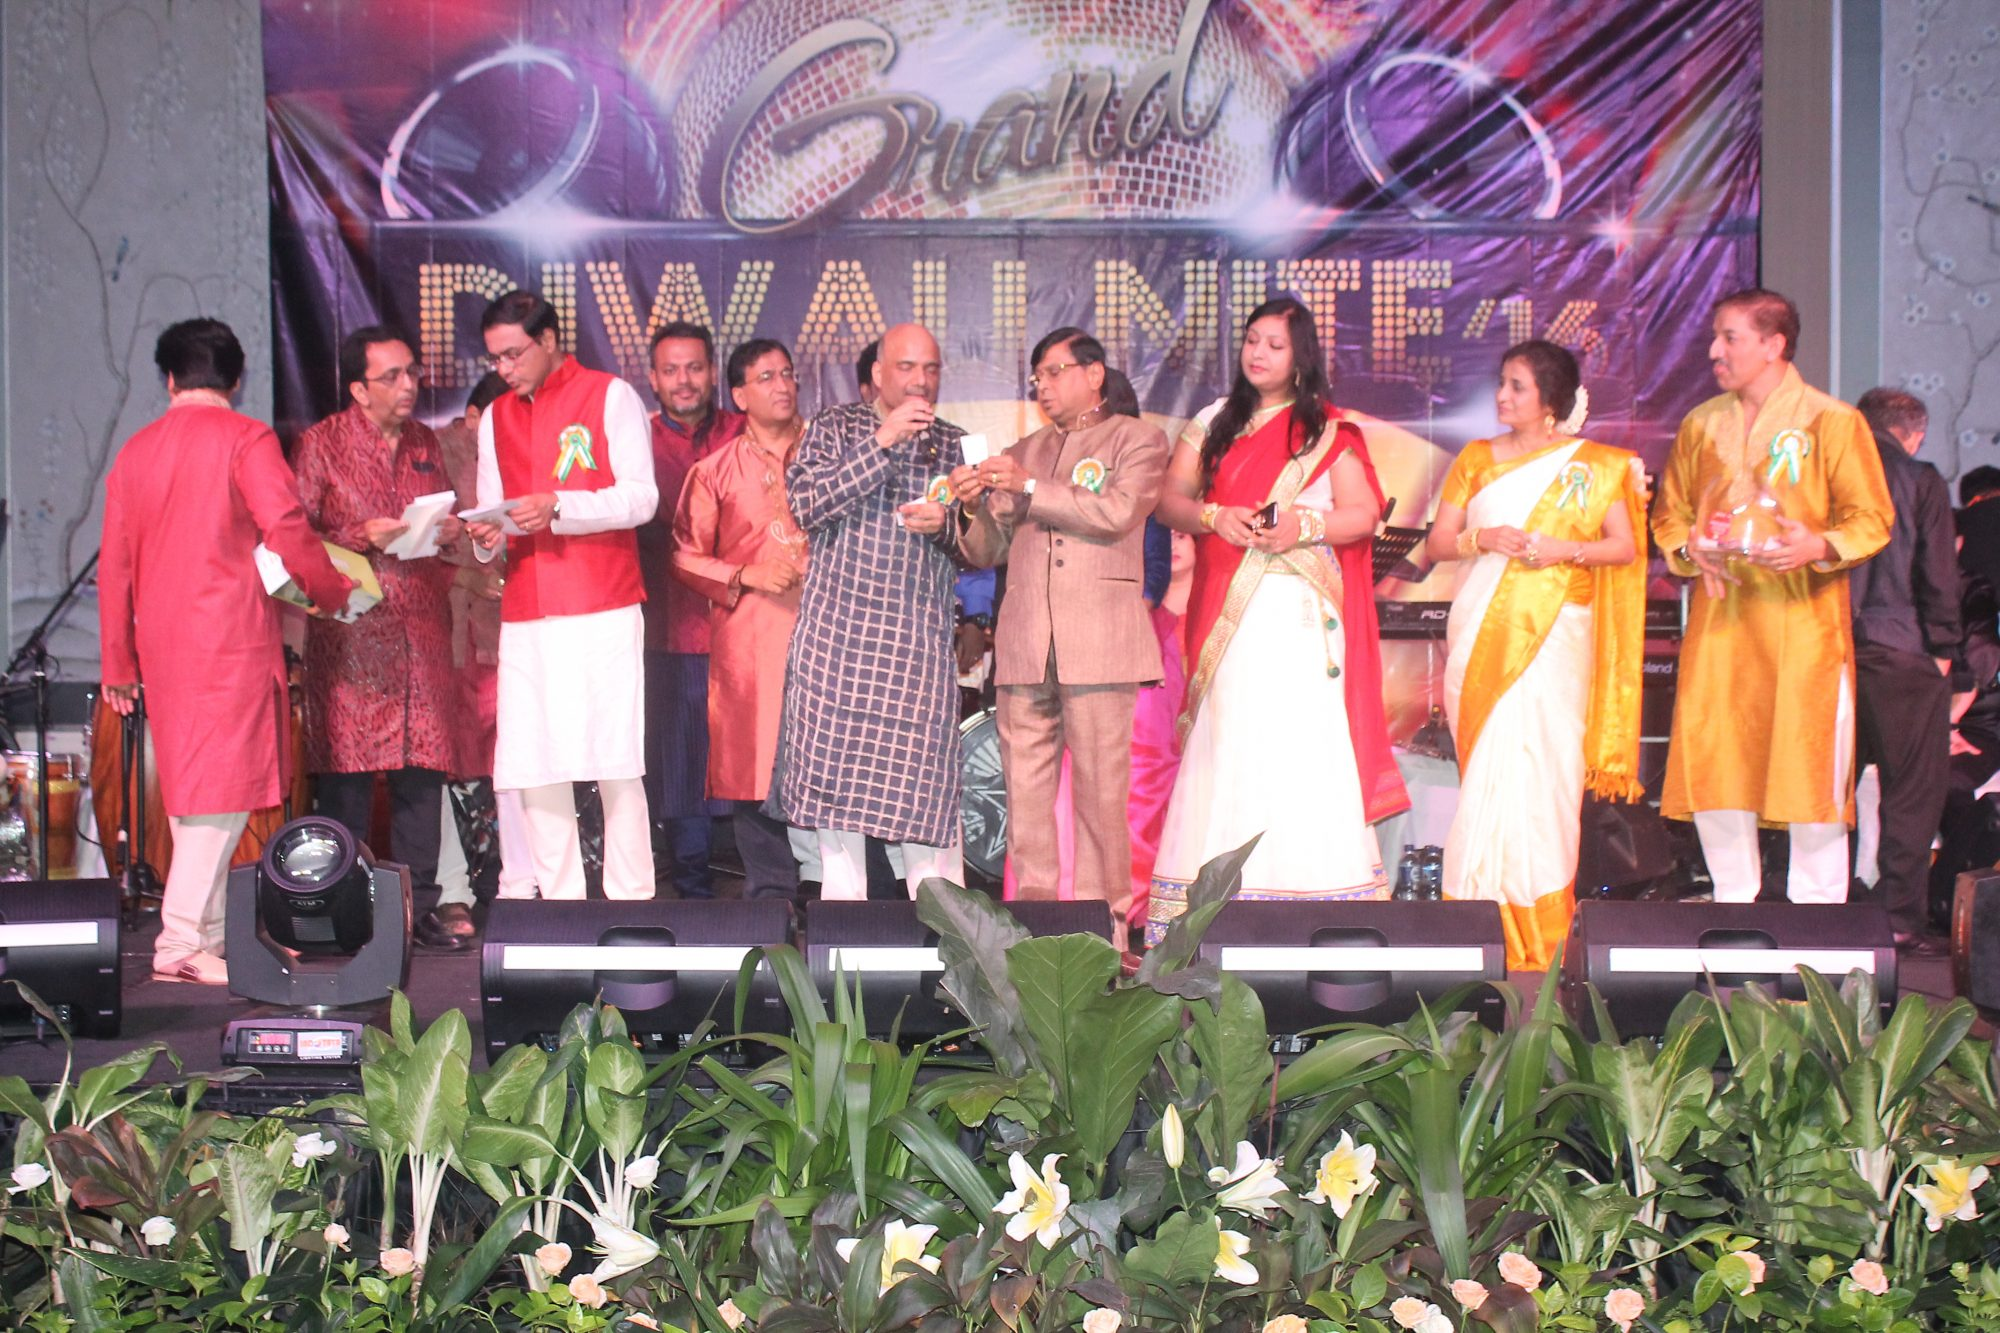 India Club Diwali Event 2016. From left to right: Anand k Bapat, Amith Baxi, Jaideep Bhattacharjee, Sidharth Tekriwal, Hari Krishnan, Rakesh Jain, C.S Sheshadari, Kanika Rajpurohit, Poonam Sagar & Shailendra Halbe